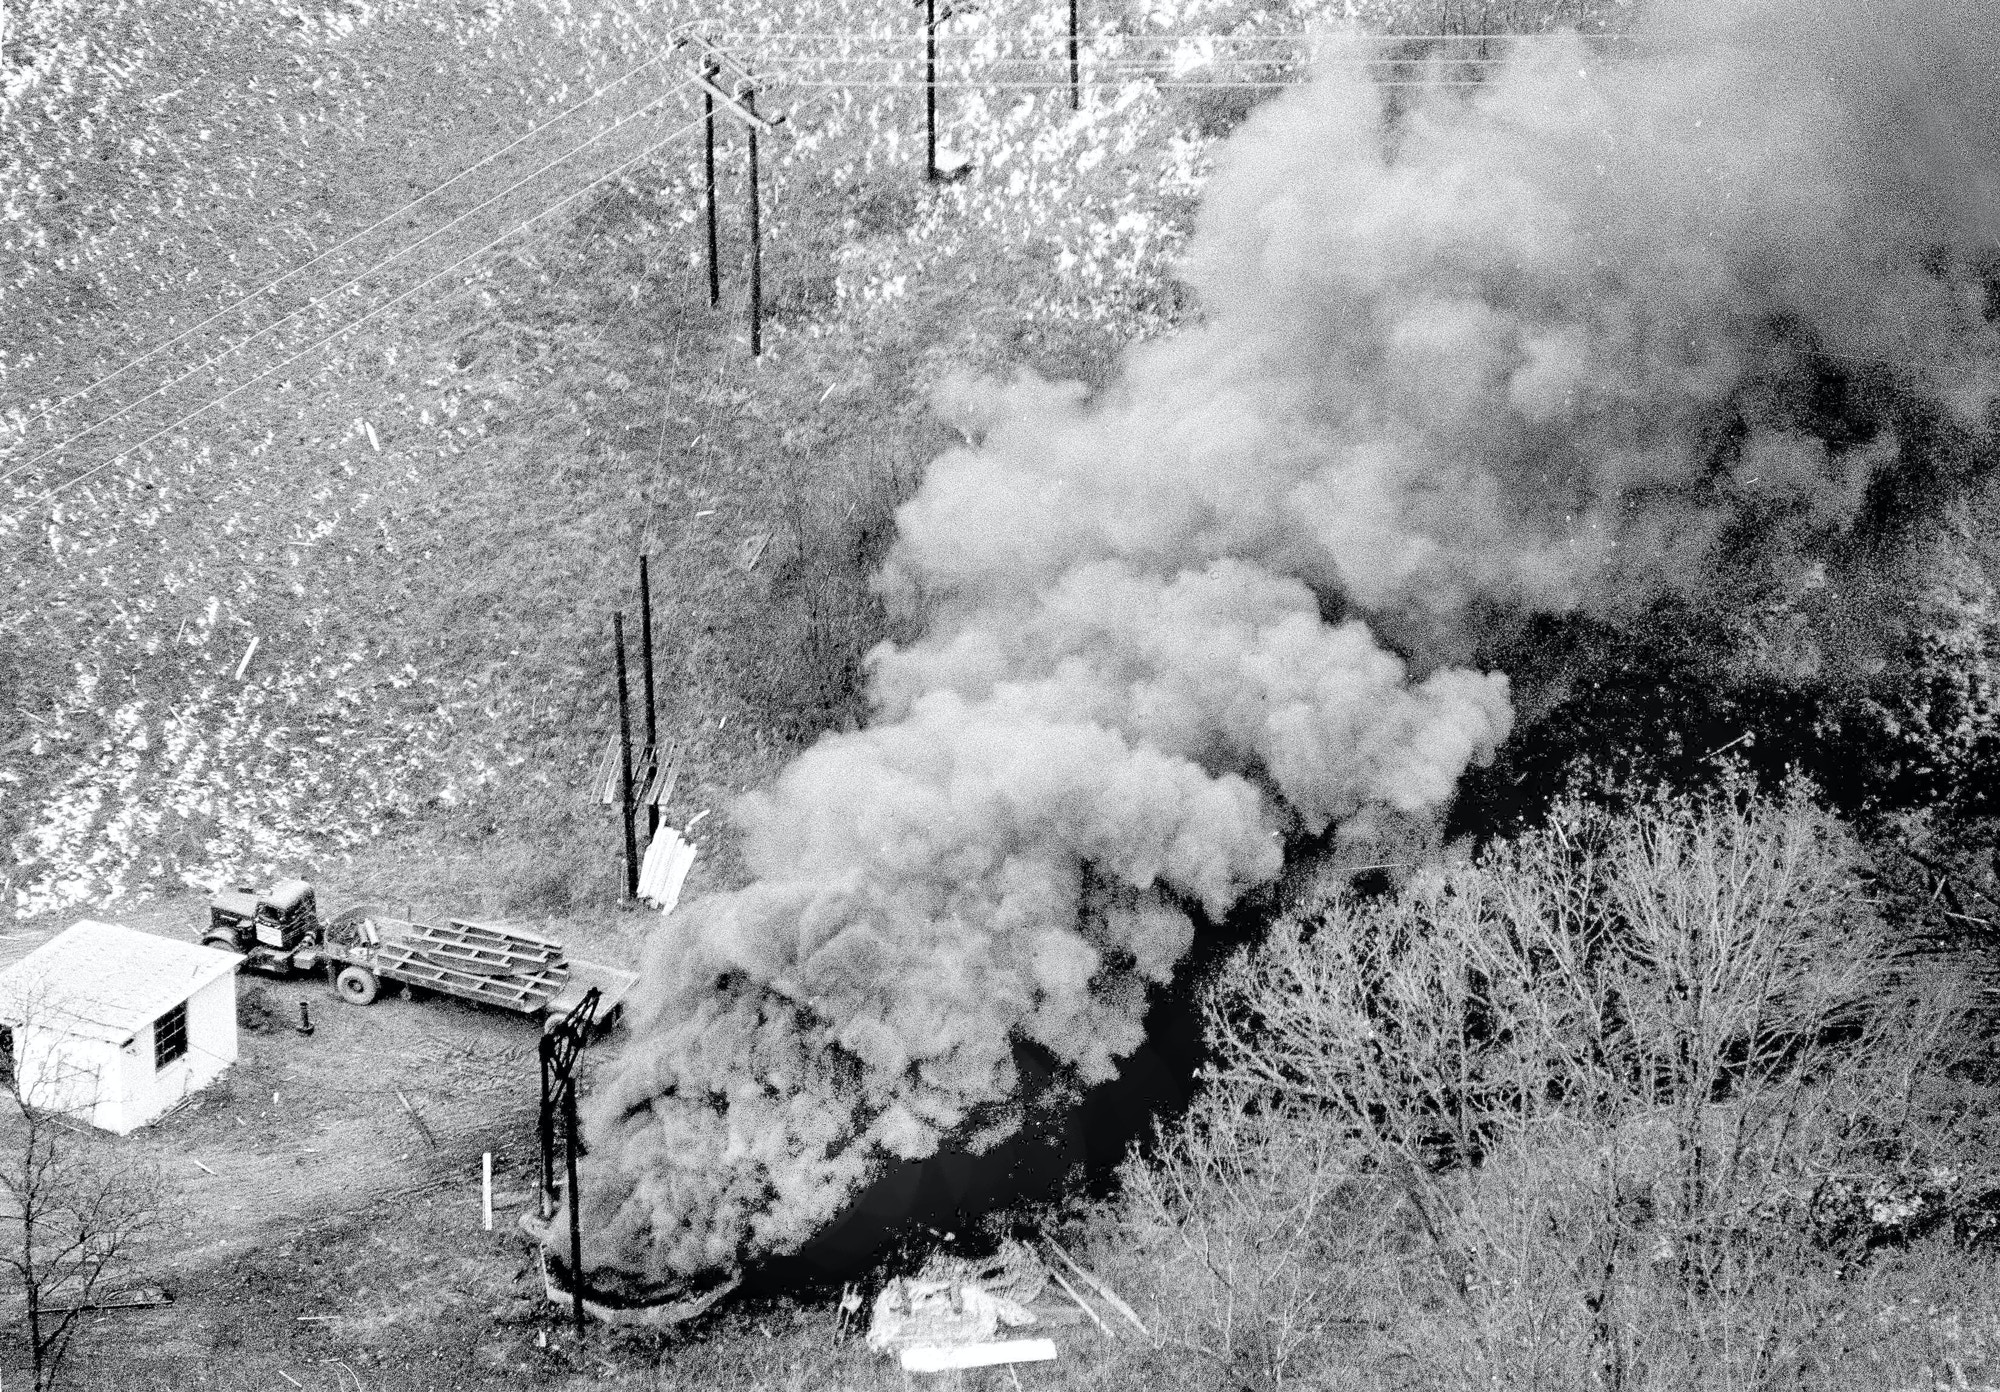 Heavy dense black smoke pours from the Mod's Run air vent where 78 miners are entombed near Farmington, W.Va., Nov. 21, 1968. Twenty-one other miners made their way to the surface after an explosion yesterday. (AP Photo)